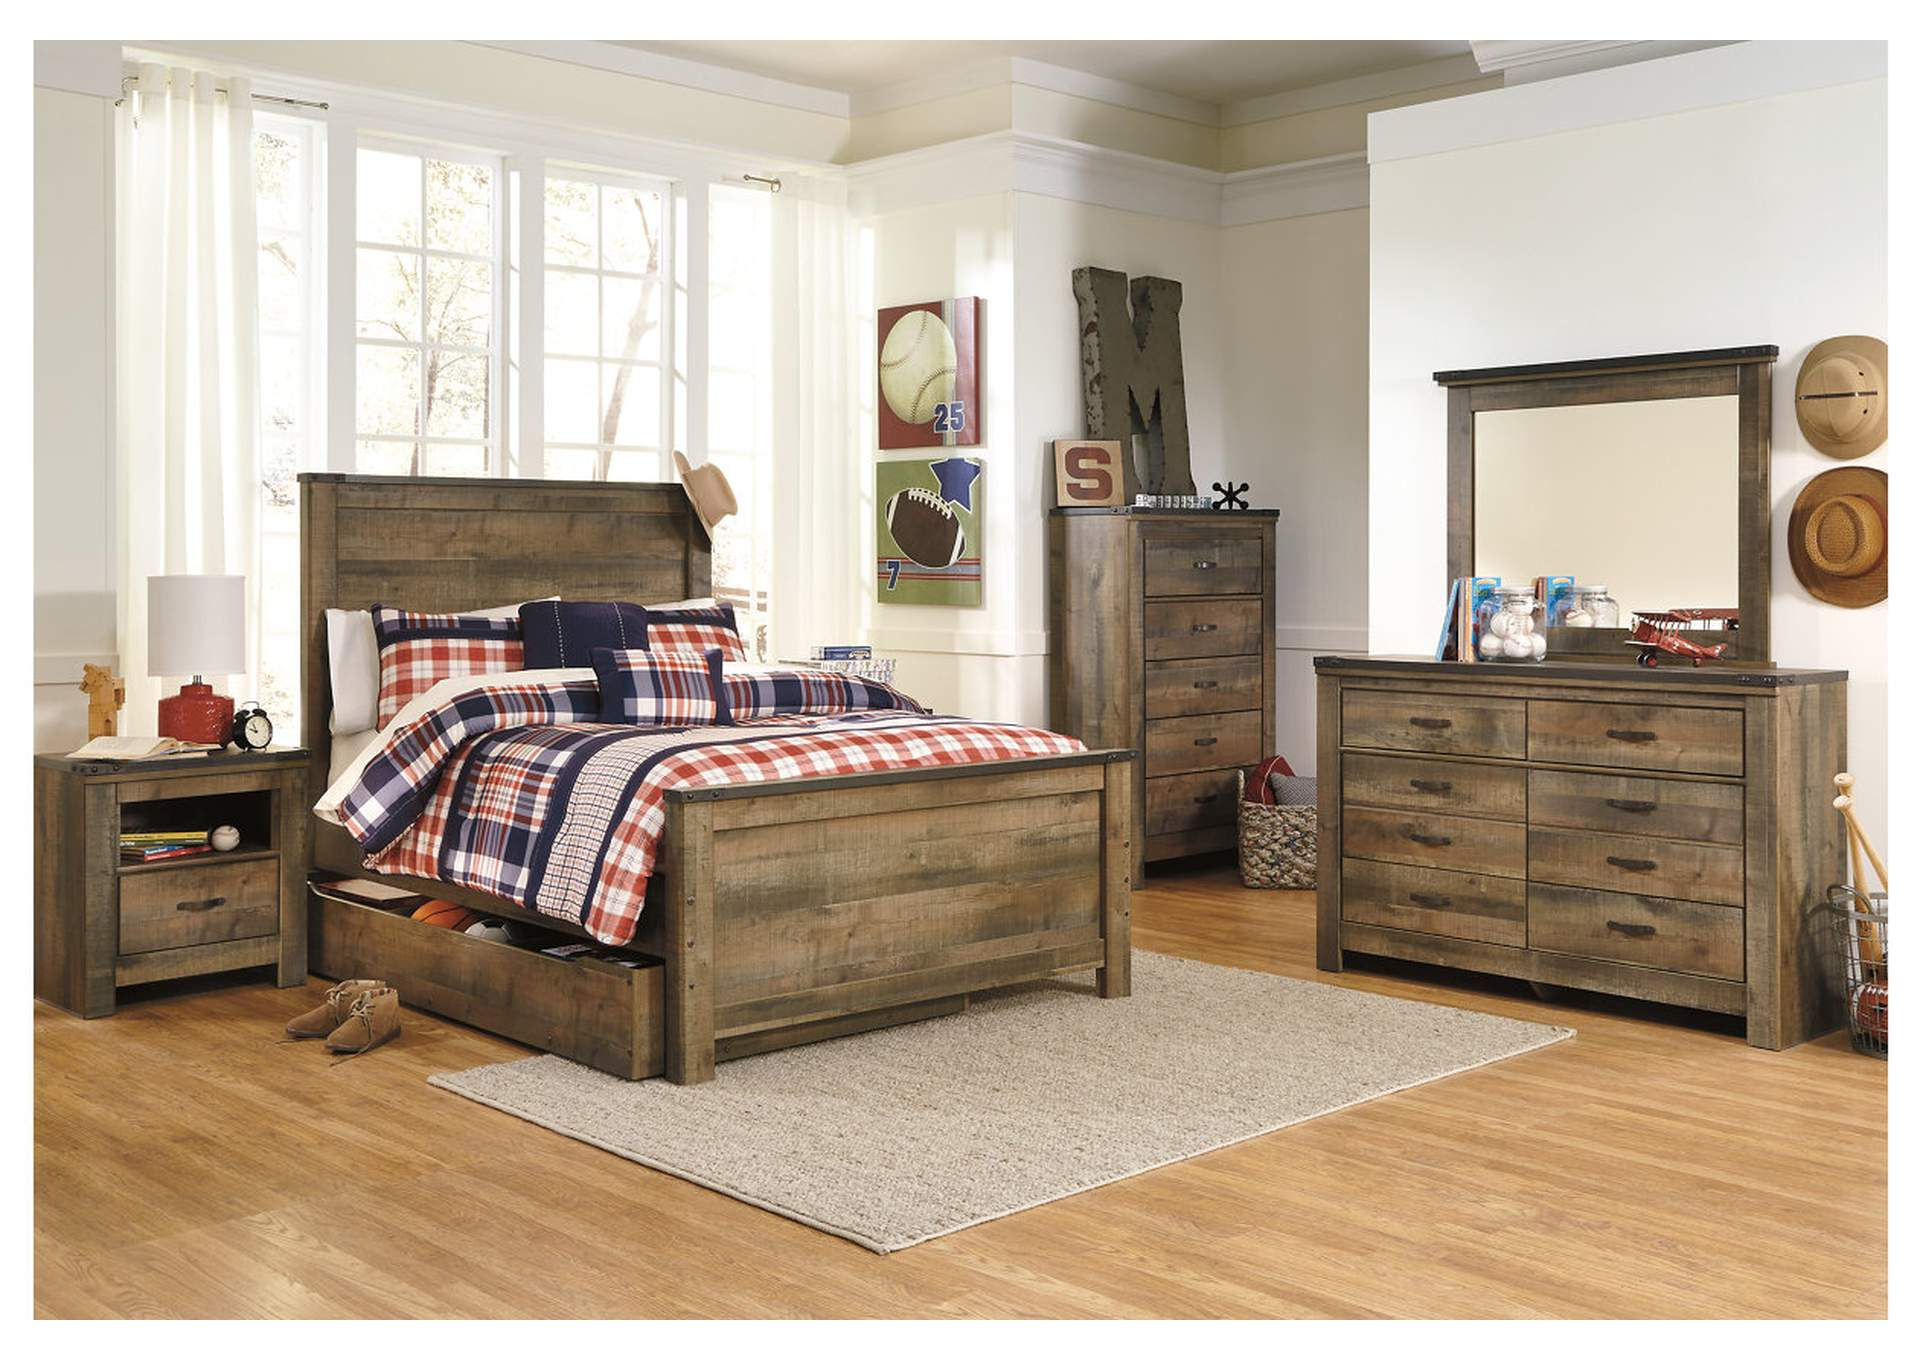 Trinell Brown Full Panel Storage Bed w/Dresser, Mirror, Drawer Chest & Nightstand,Signature Design By Ashley